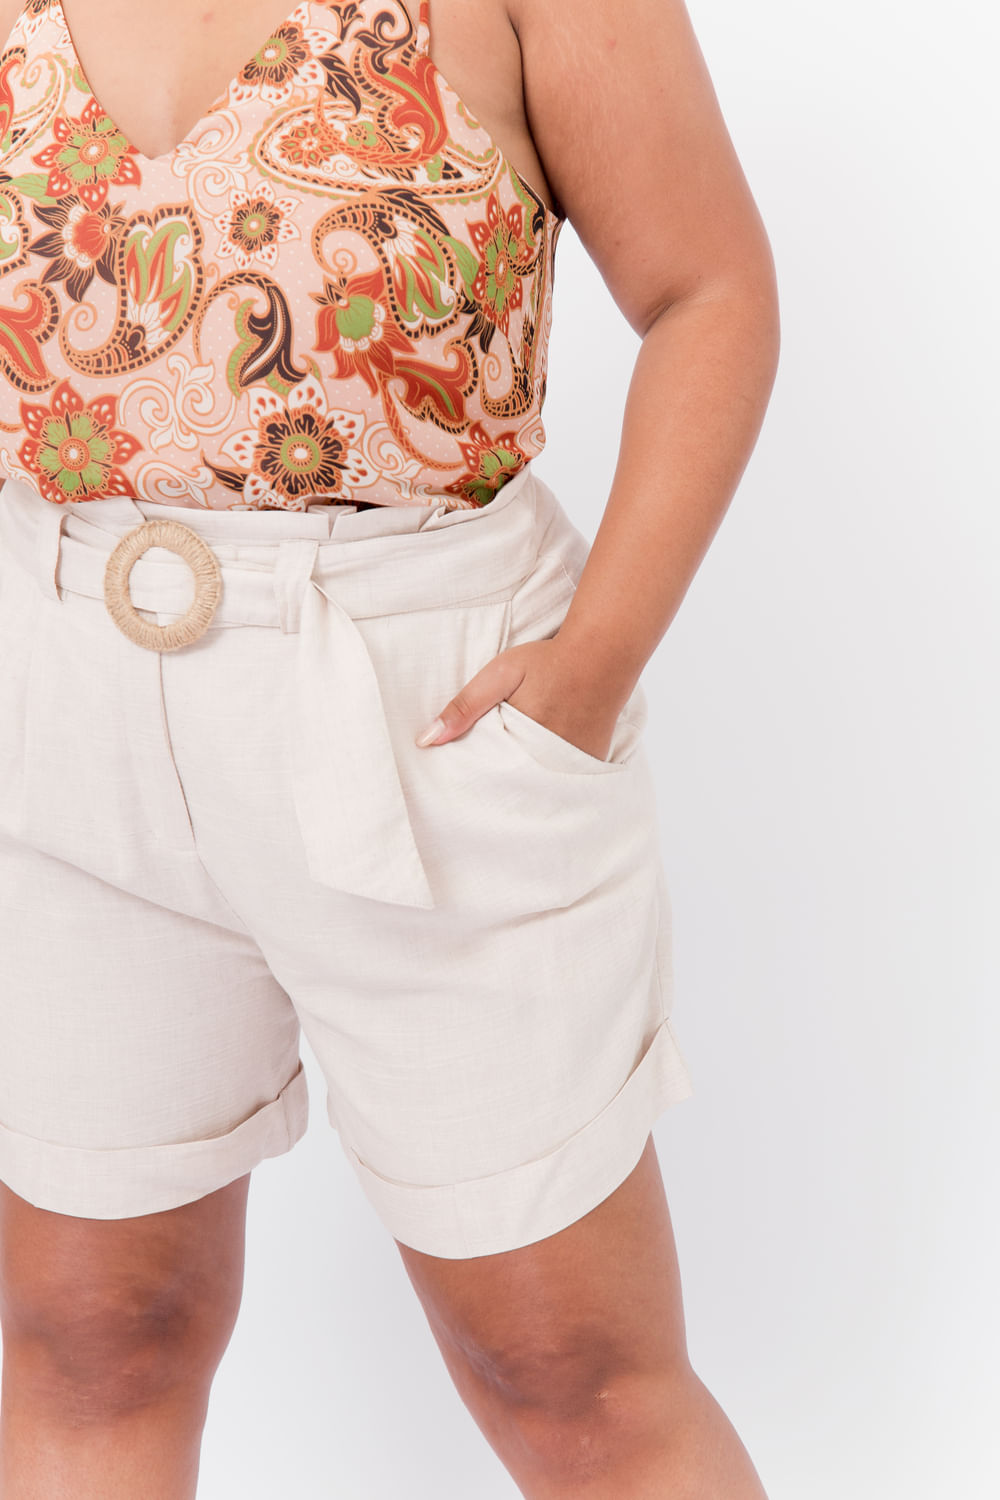 T117_5_Shorts_Plus_Size_Clochard_Com_Fivela_Palha_NATURAL_2